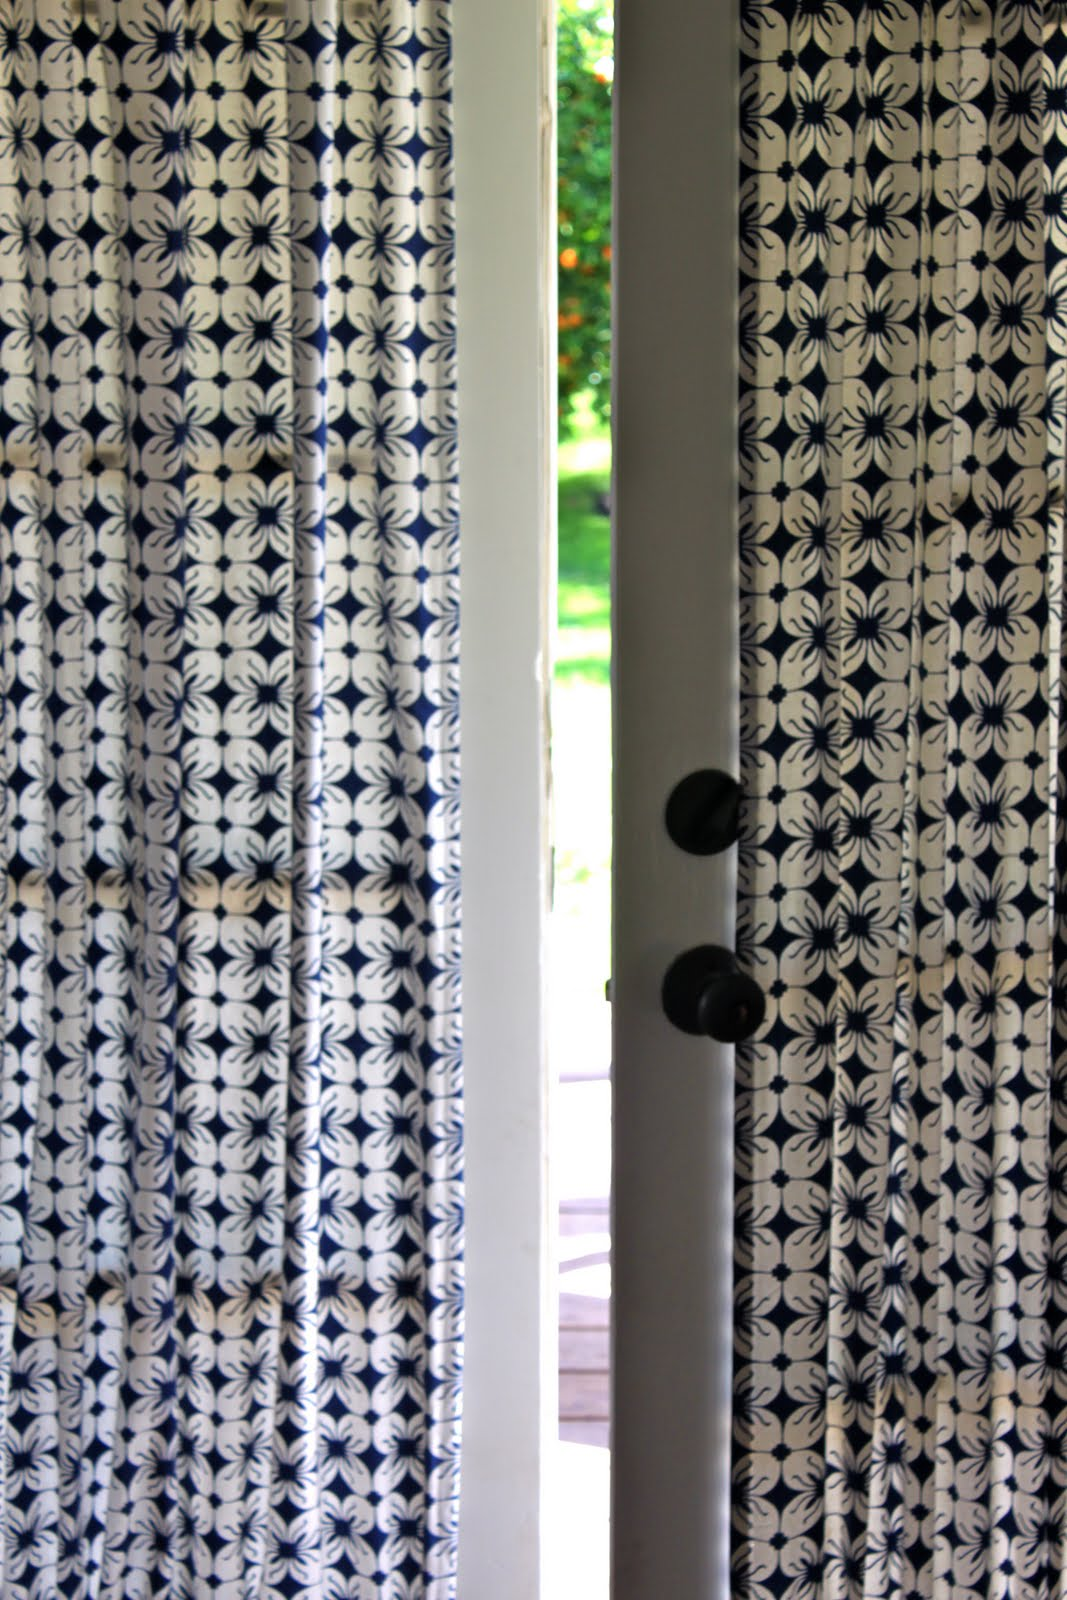 DIY French Door Curtain Panel Tutorial | Pretty Prudent for Curtain Patterns 2012  15lptgx